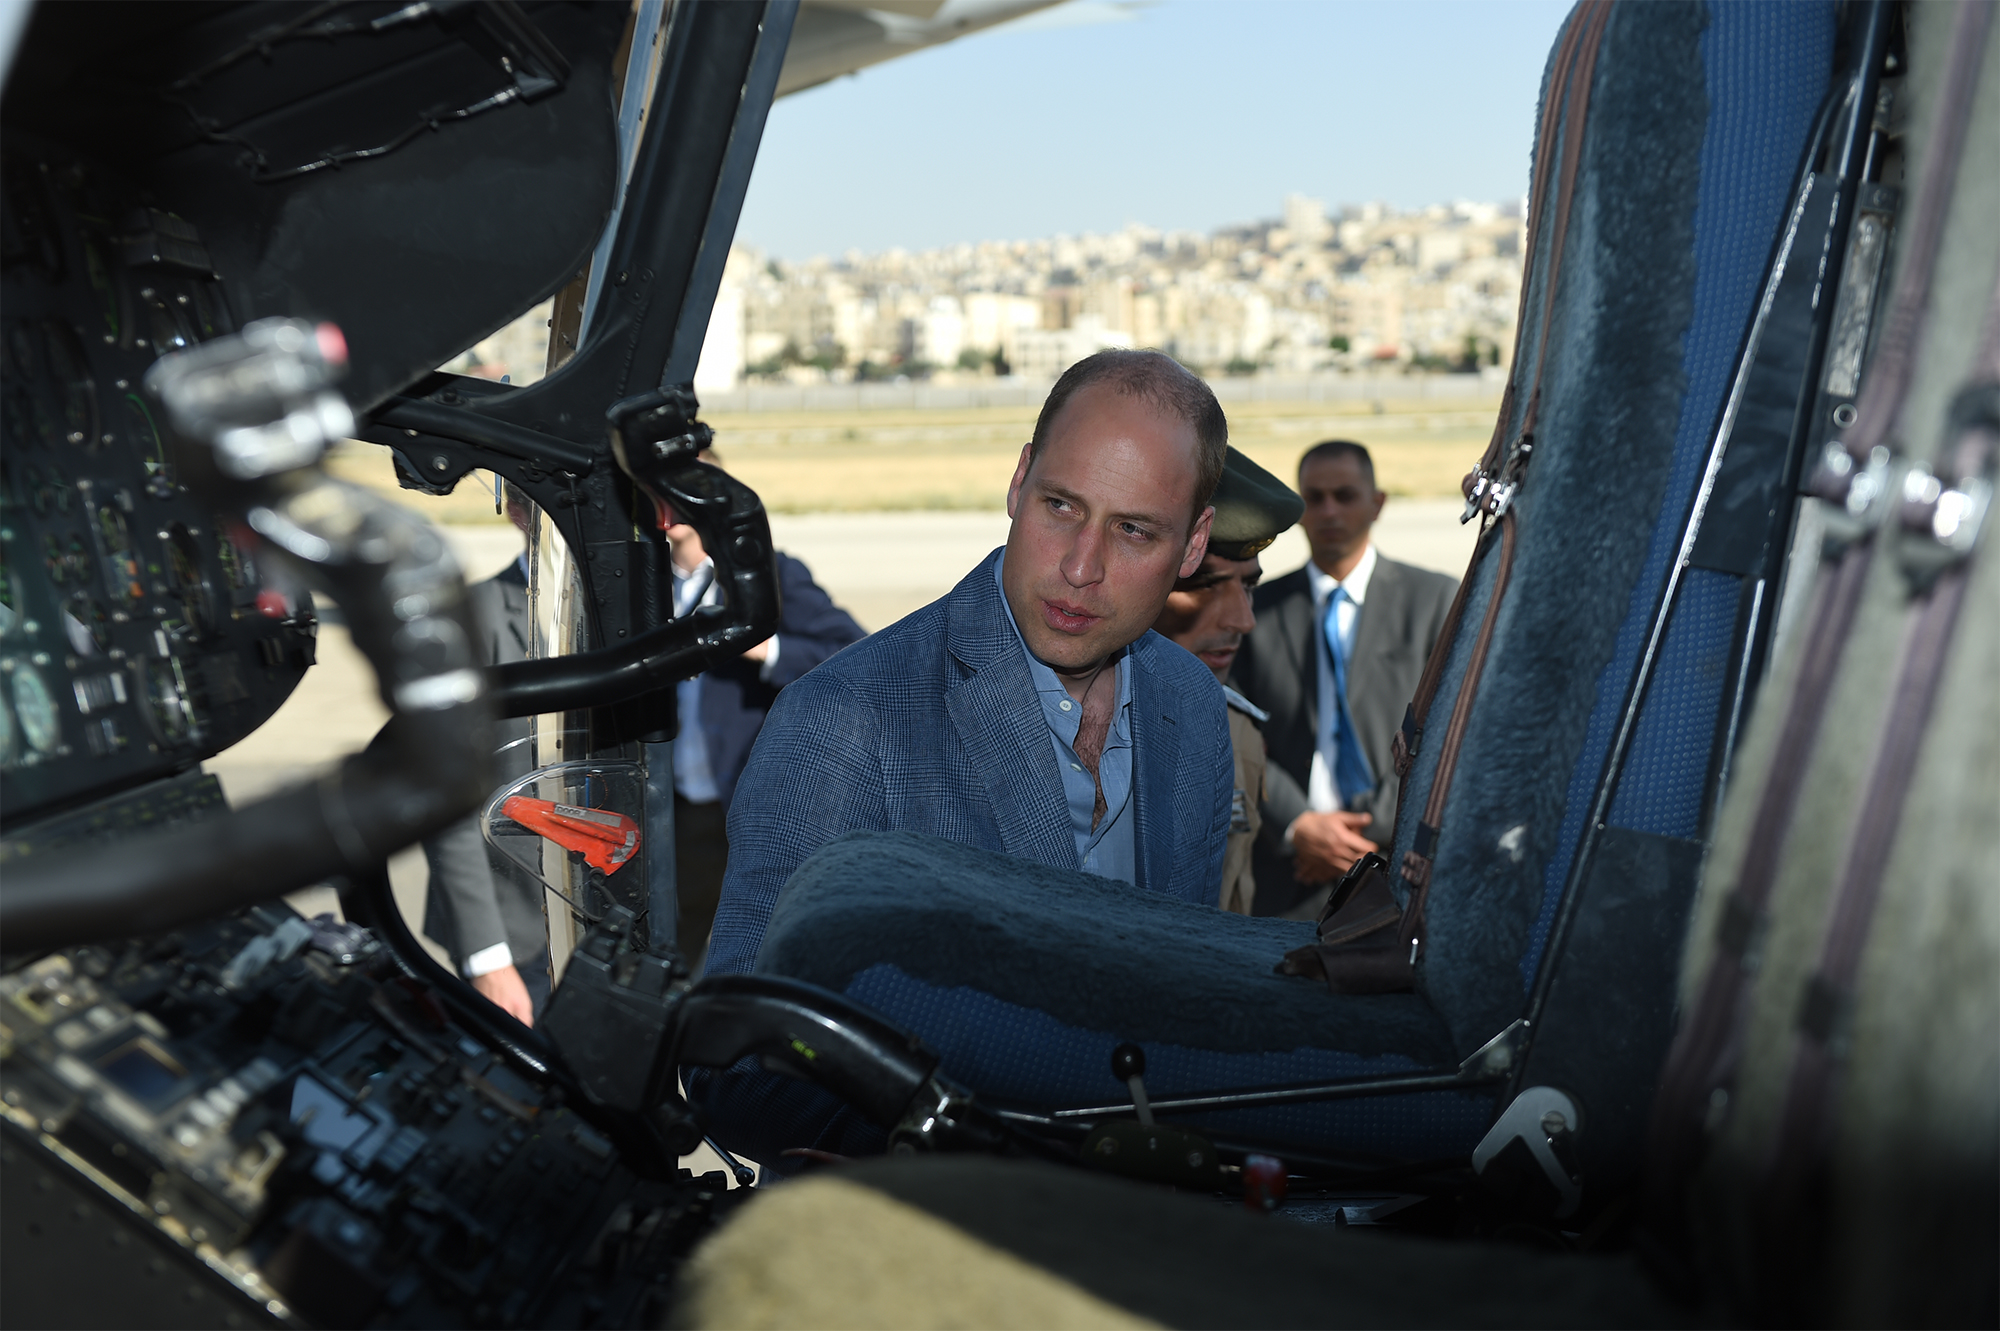 The Duke Of Cambridge Visits Jordan, Israel And The Occupied Palestinian Territories